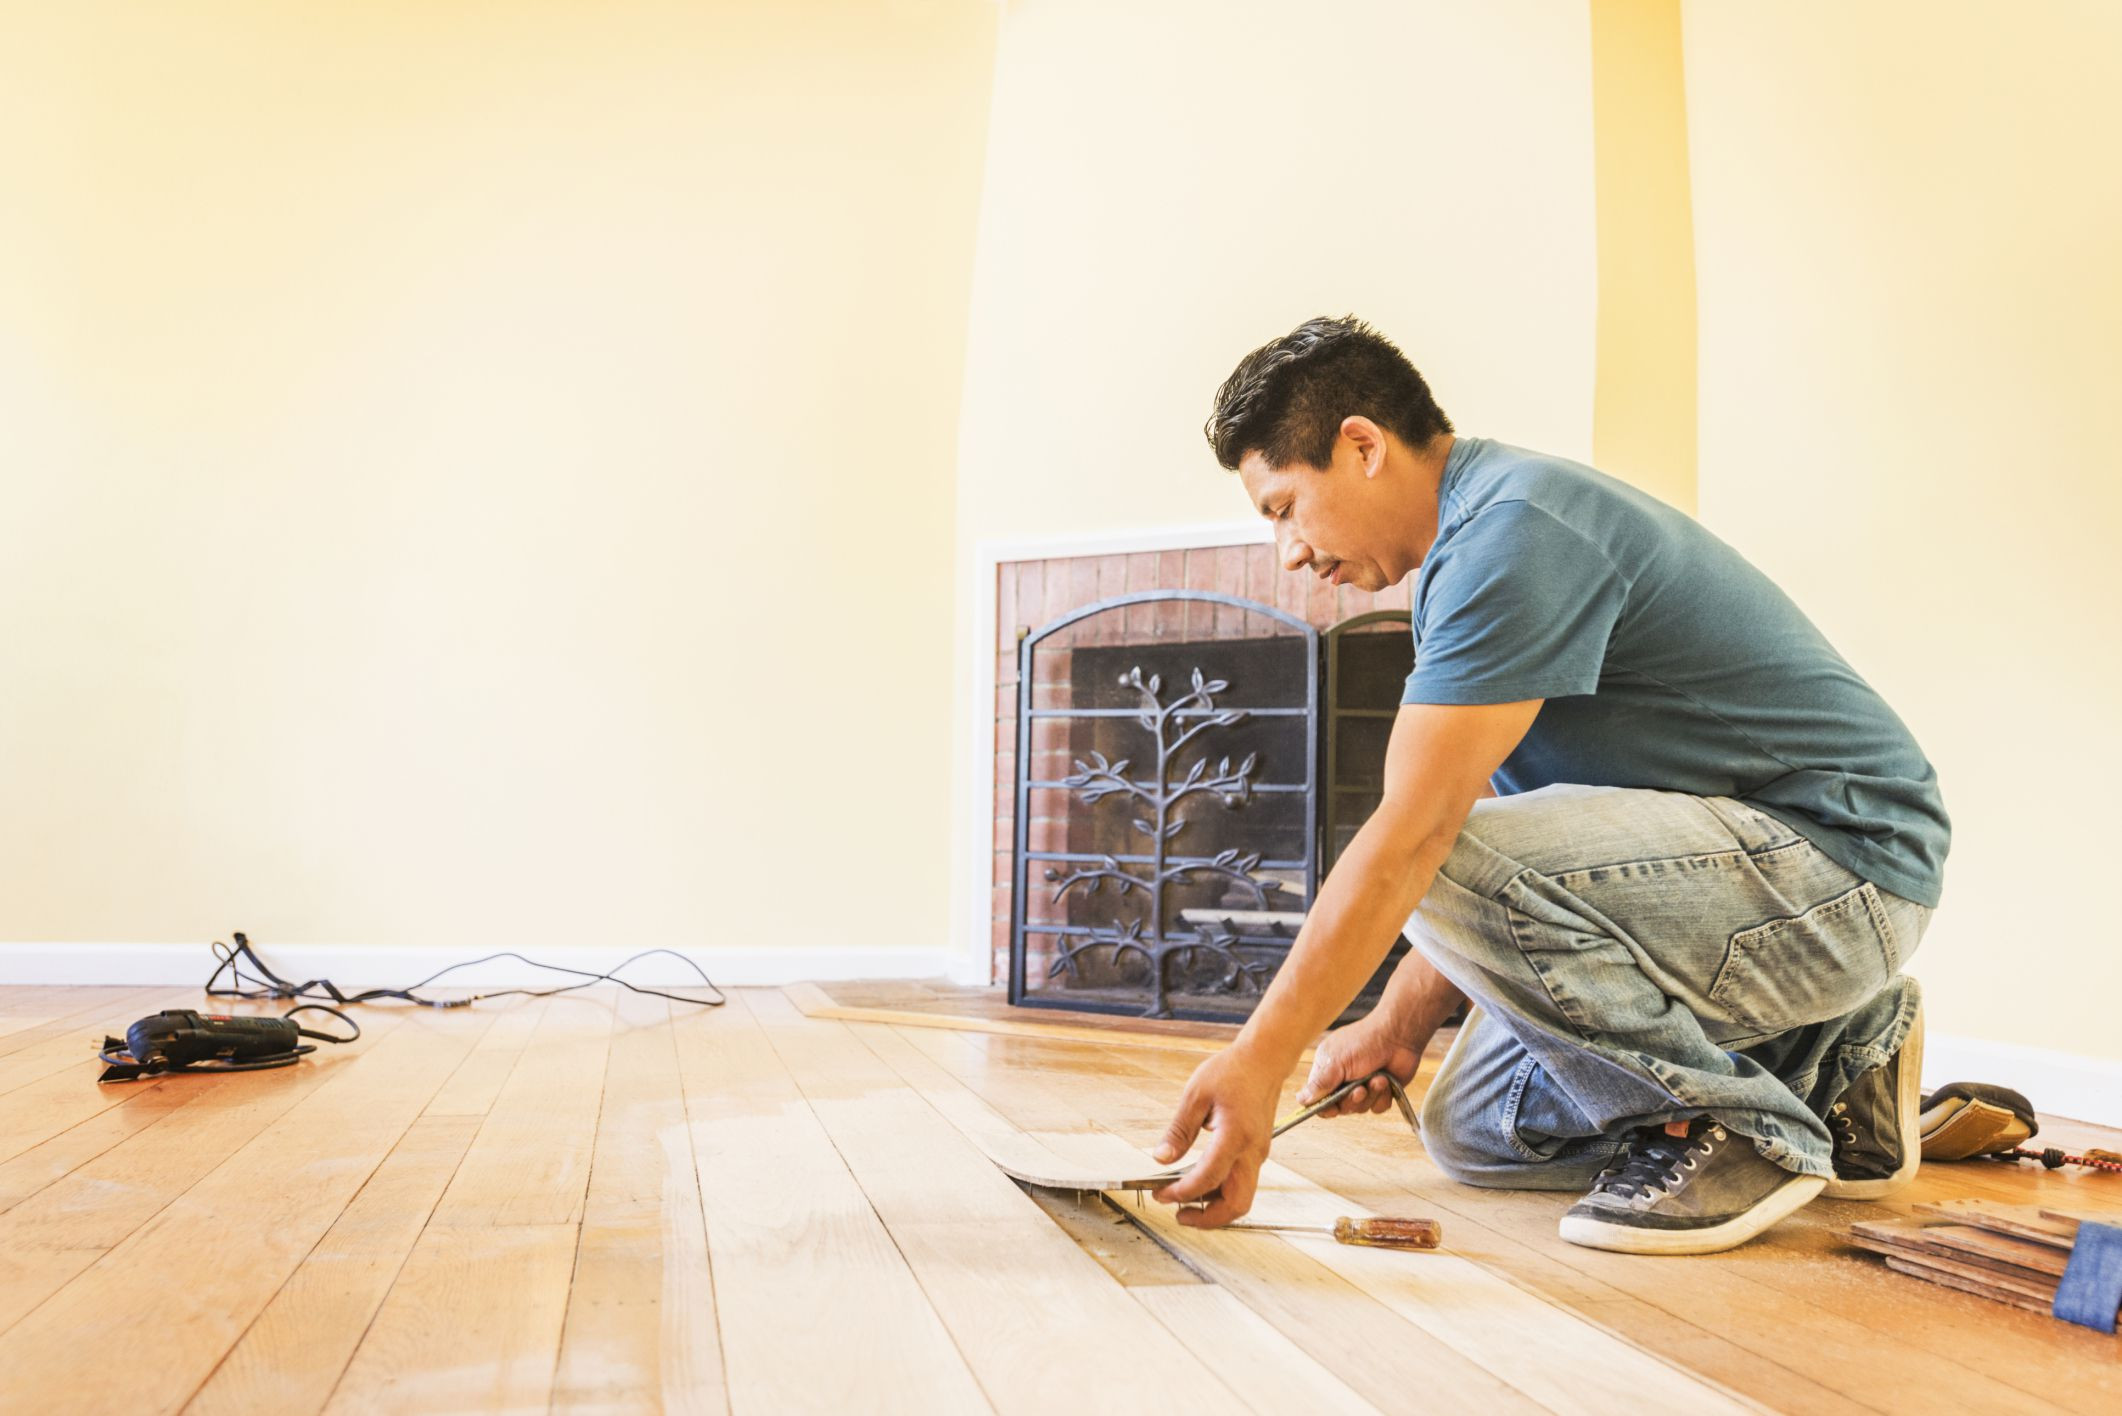 discount hardwood flooring houston of solid hardwood flooring costs for professional vs diy throughout installwoodflooring 592016327 56684d6f3df78ce1610a598a